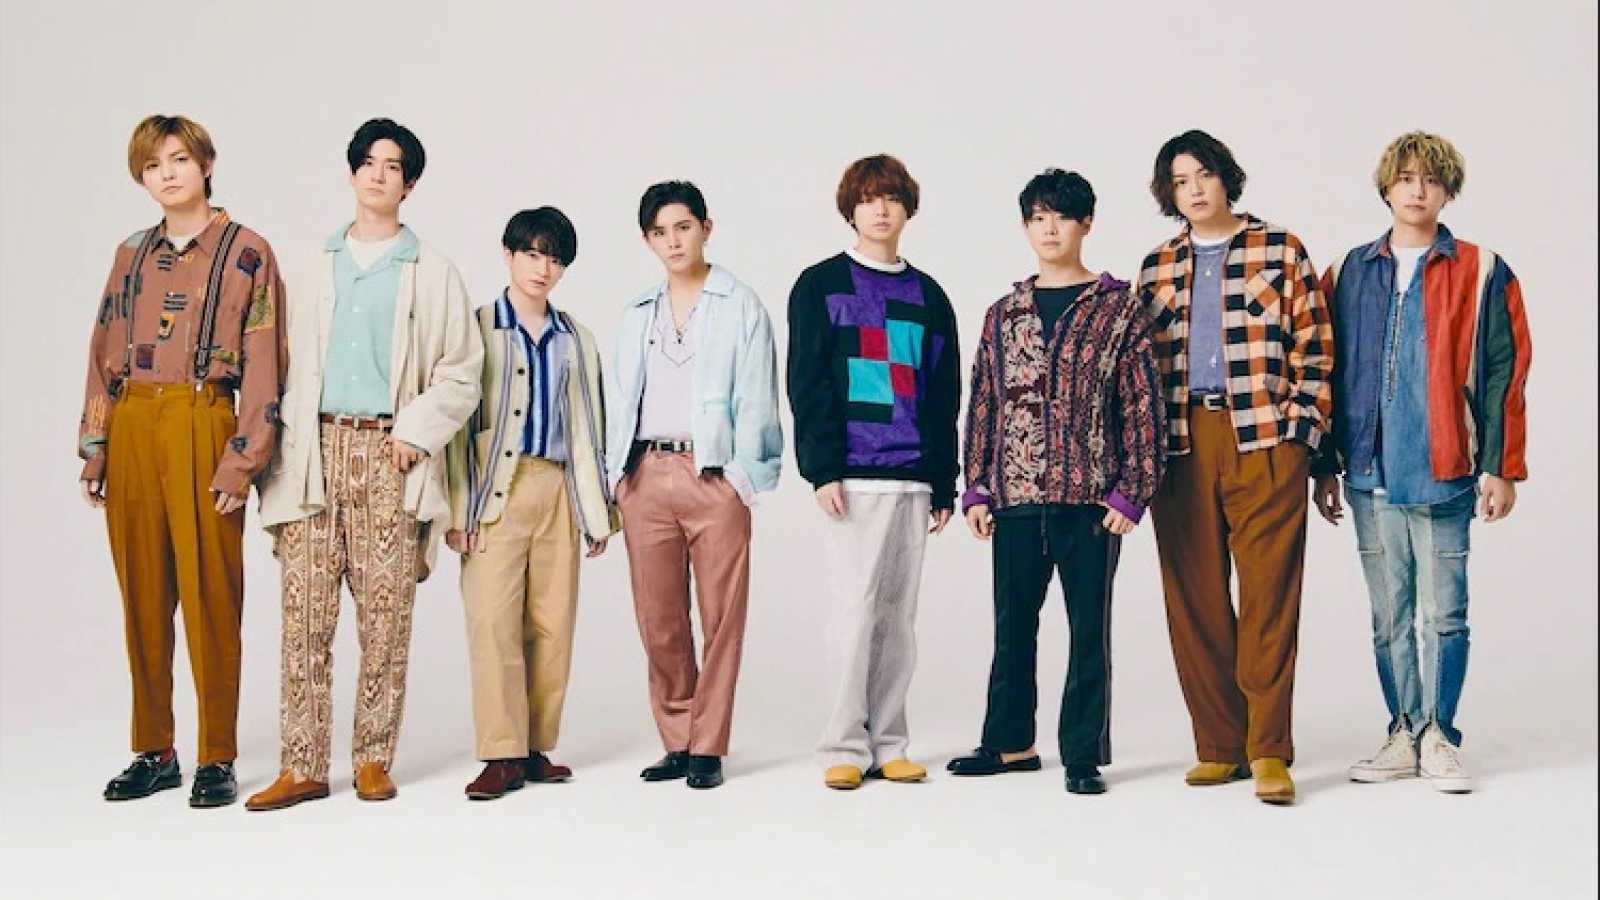 New Album from Hey! Say! JUMP © Hey! Say! JUMP. All rights reserved.